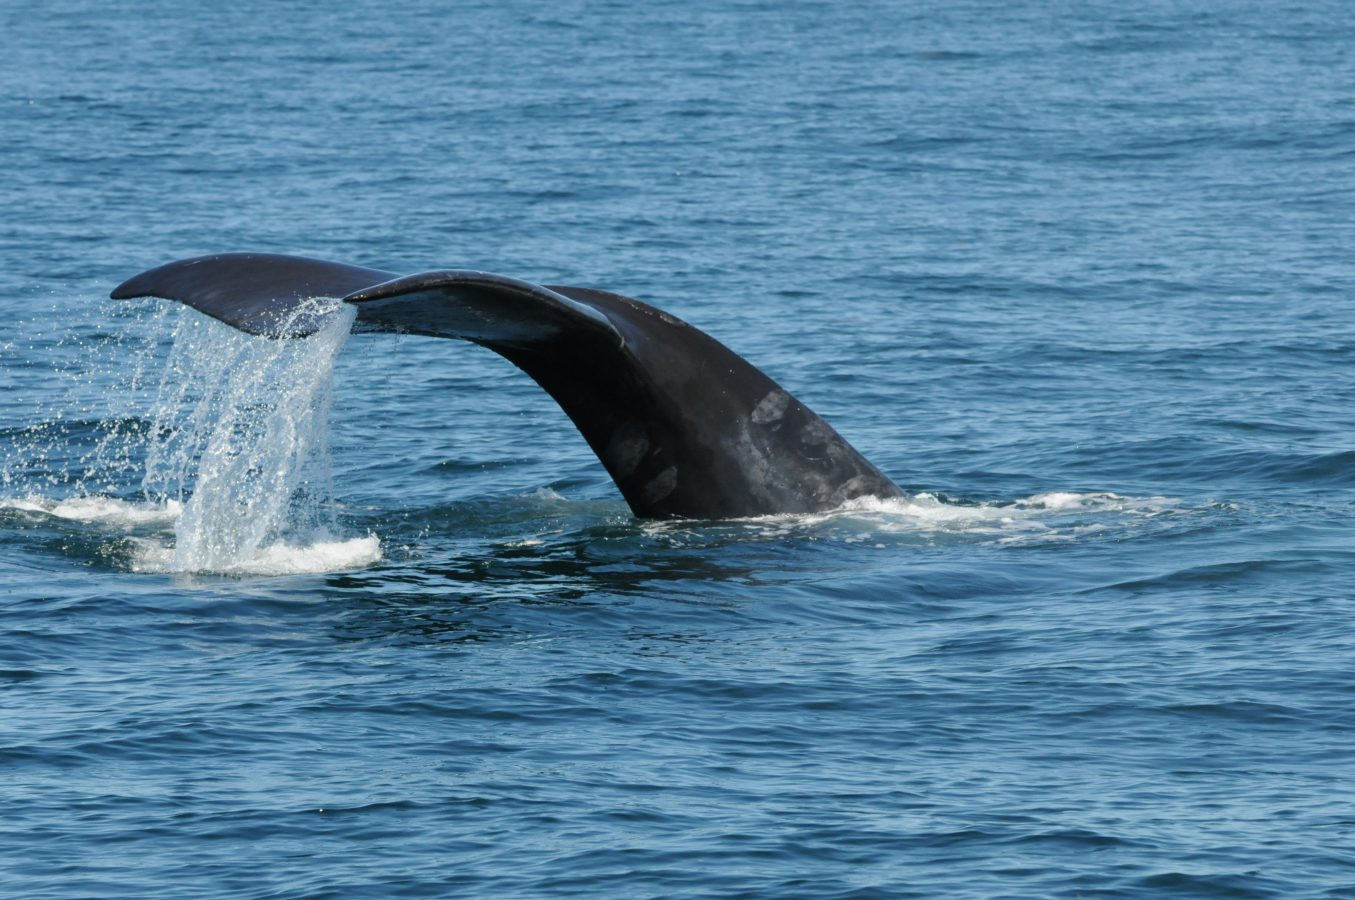 Fluke of right whale #3991.